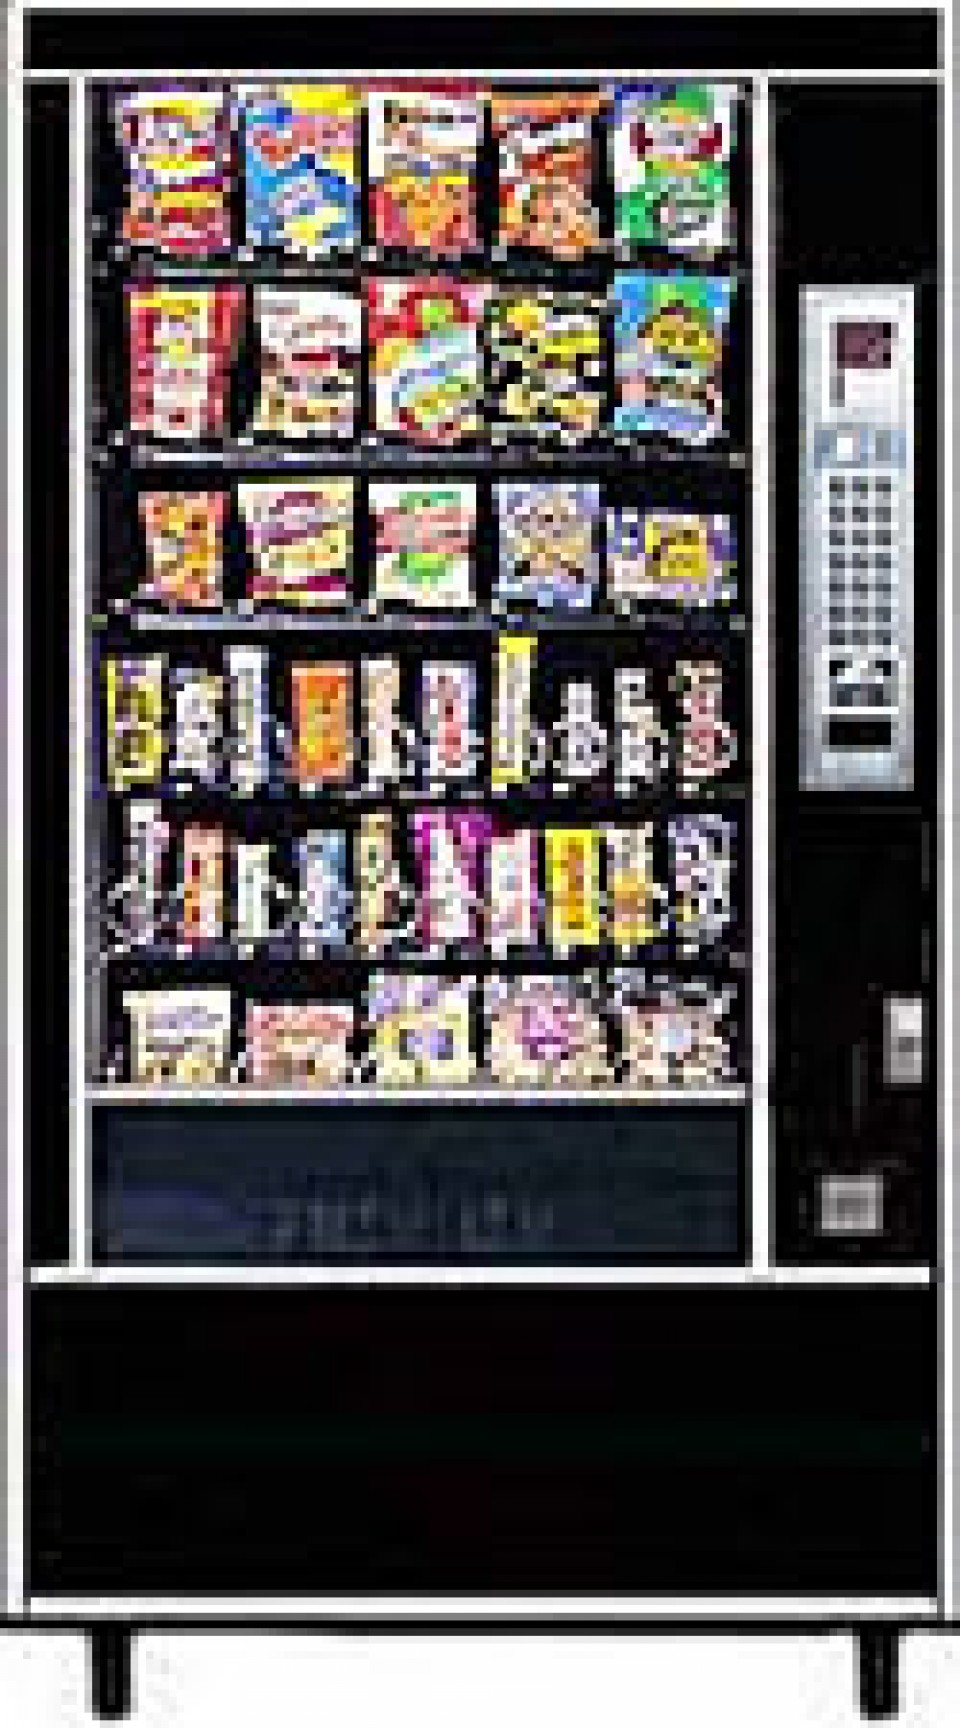 Automatic Products S7600ubv Vending Machine Automatic